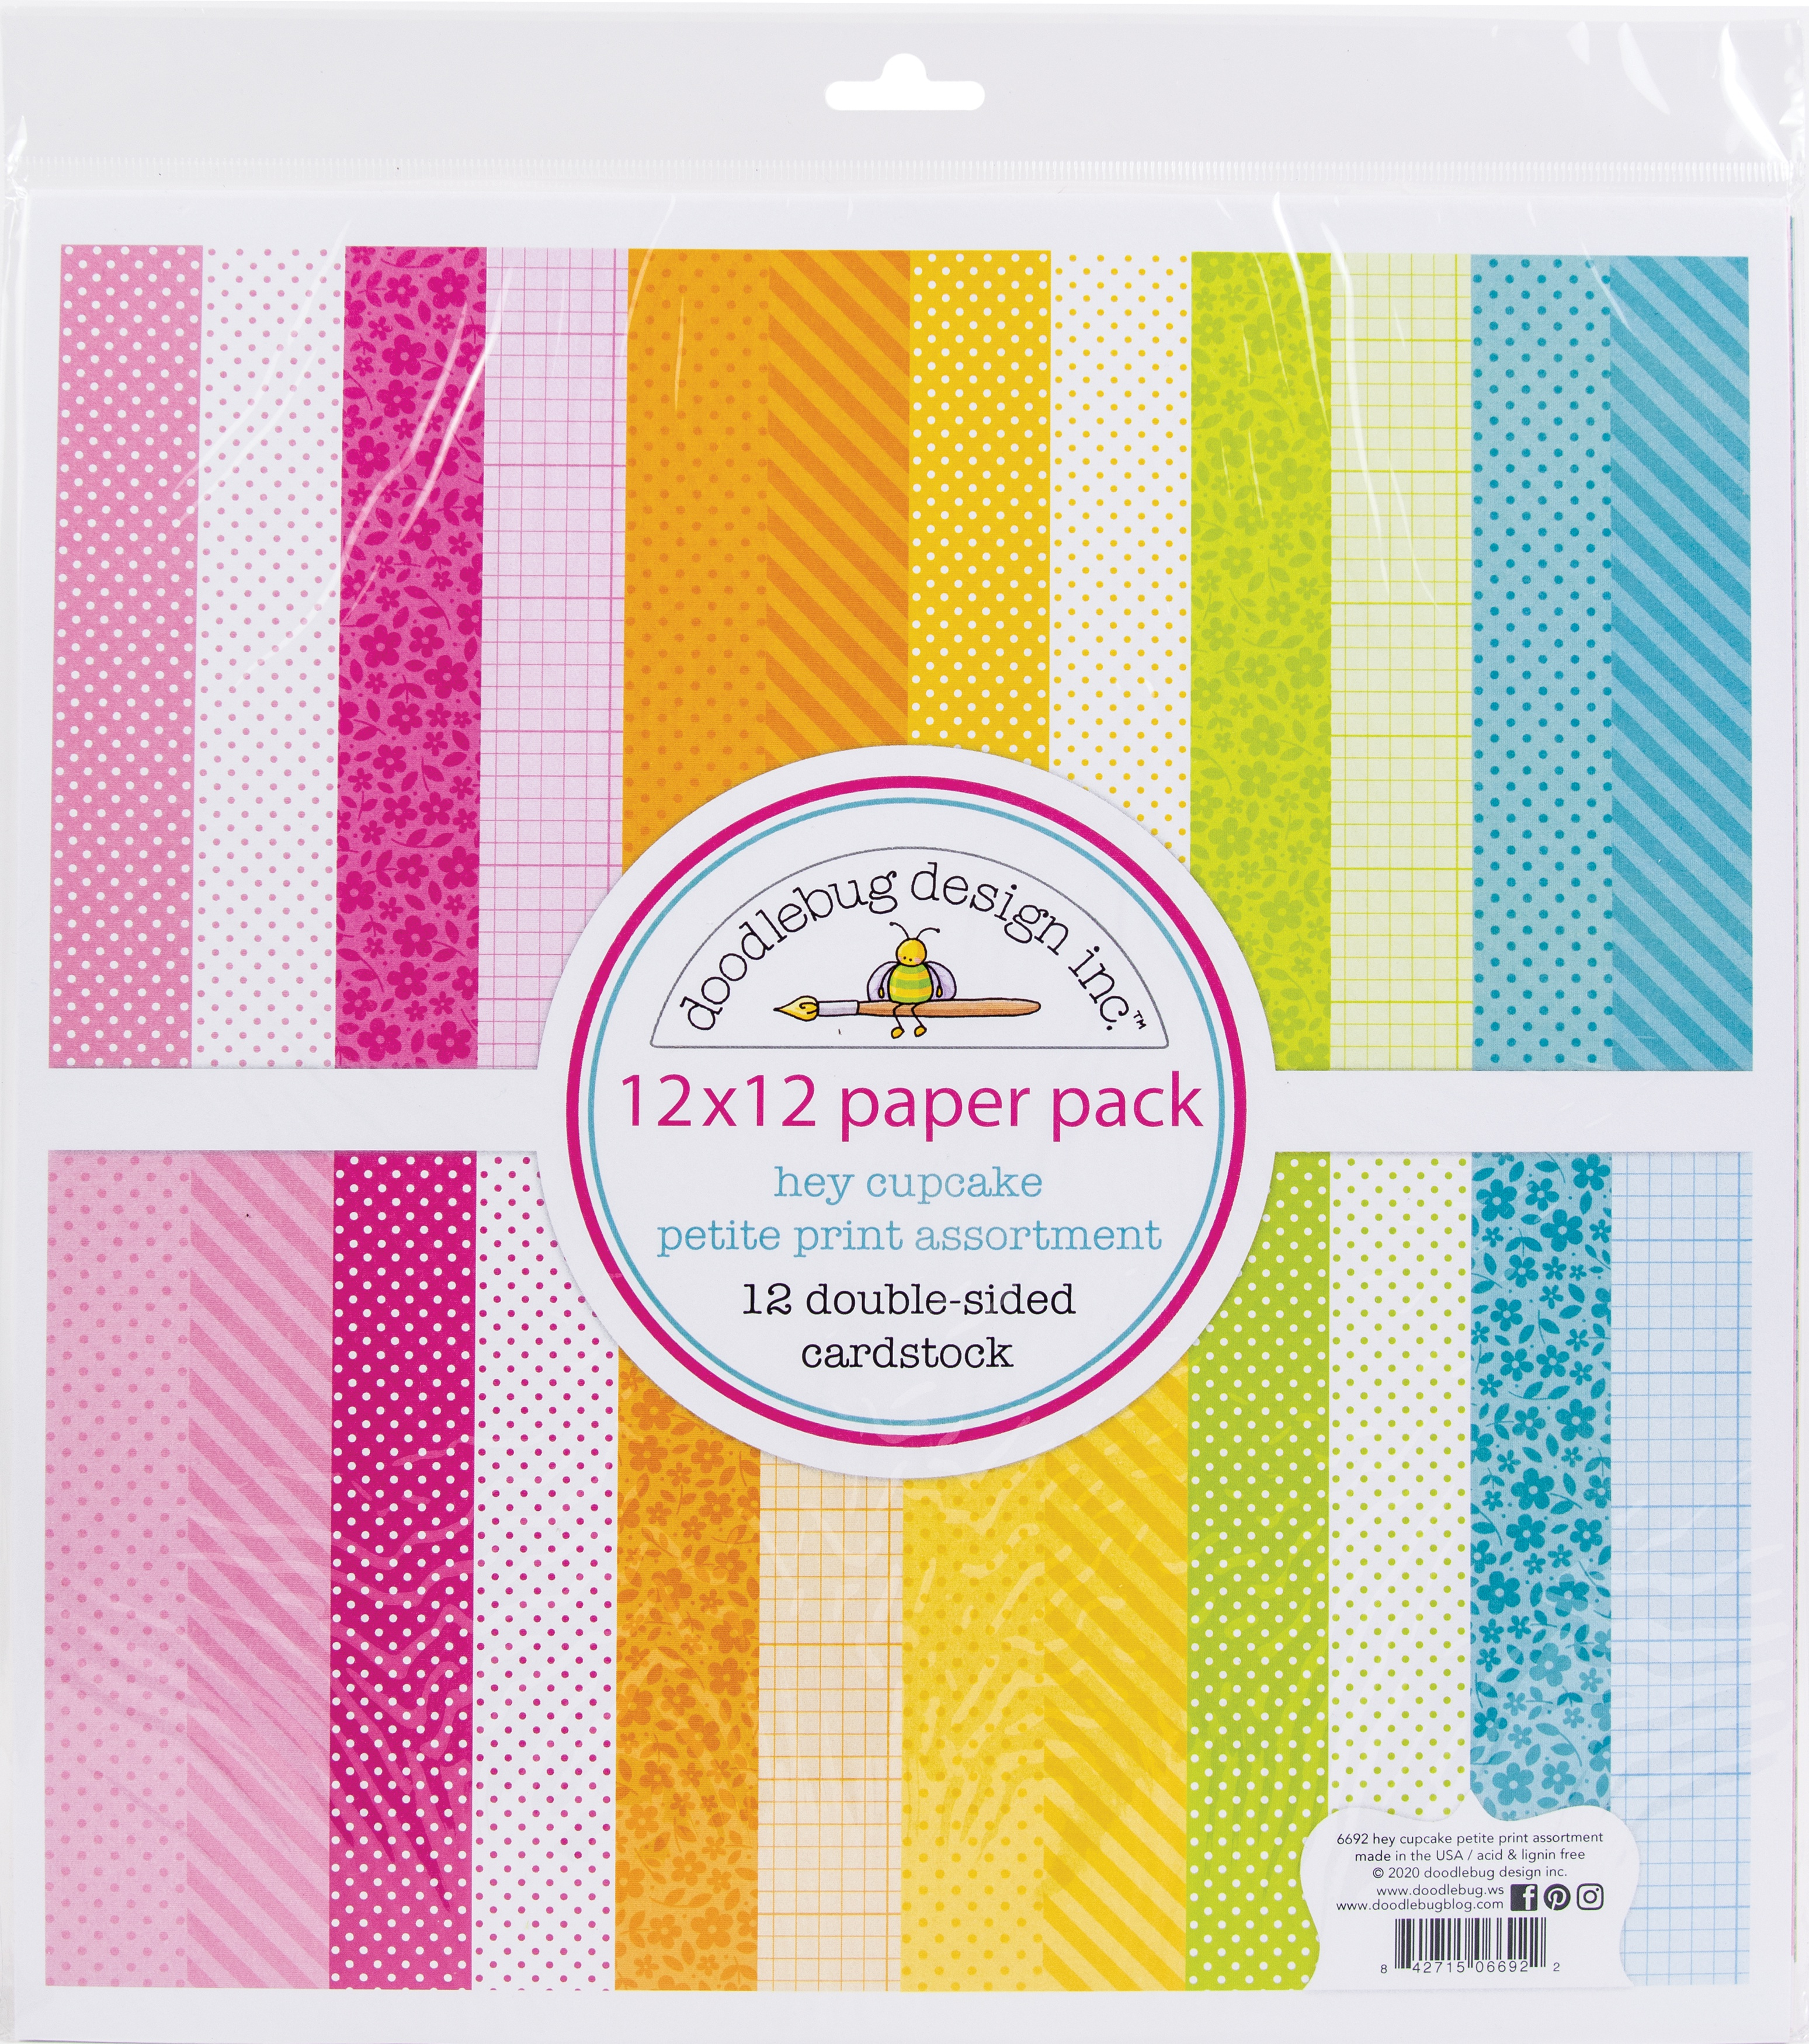 Doodlebug Petite Prints Double-Sided Cardstock 12X12 12/Pk-Hey Cupcake 12 Designs/1 Each